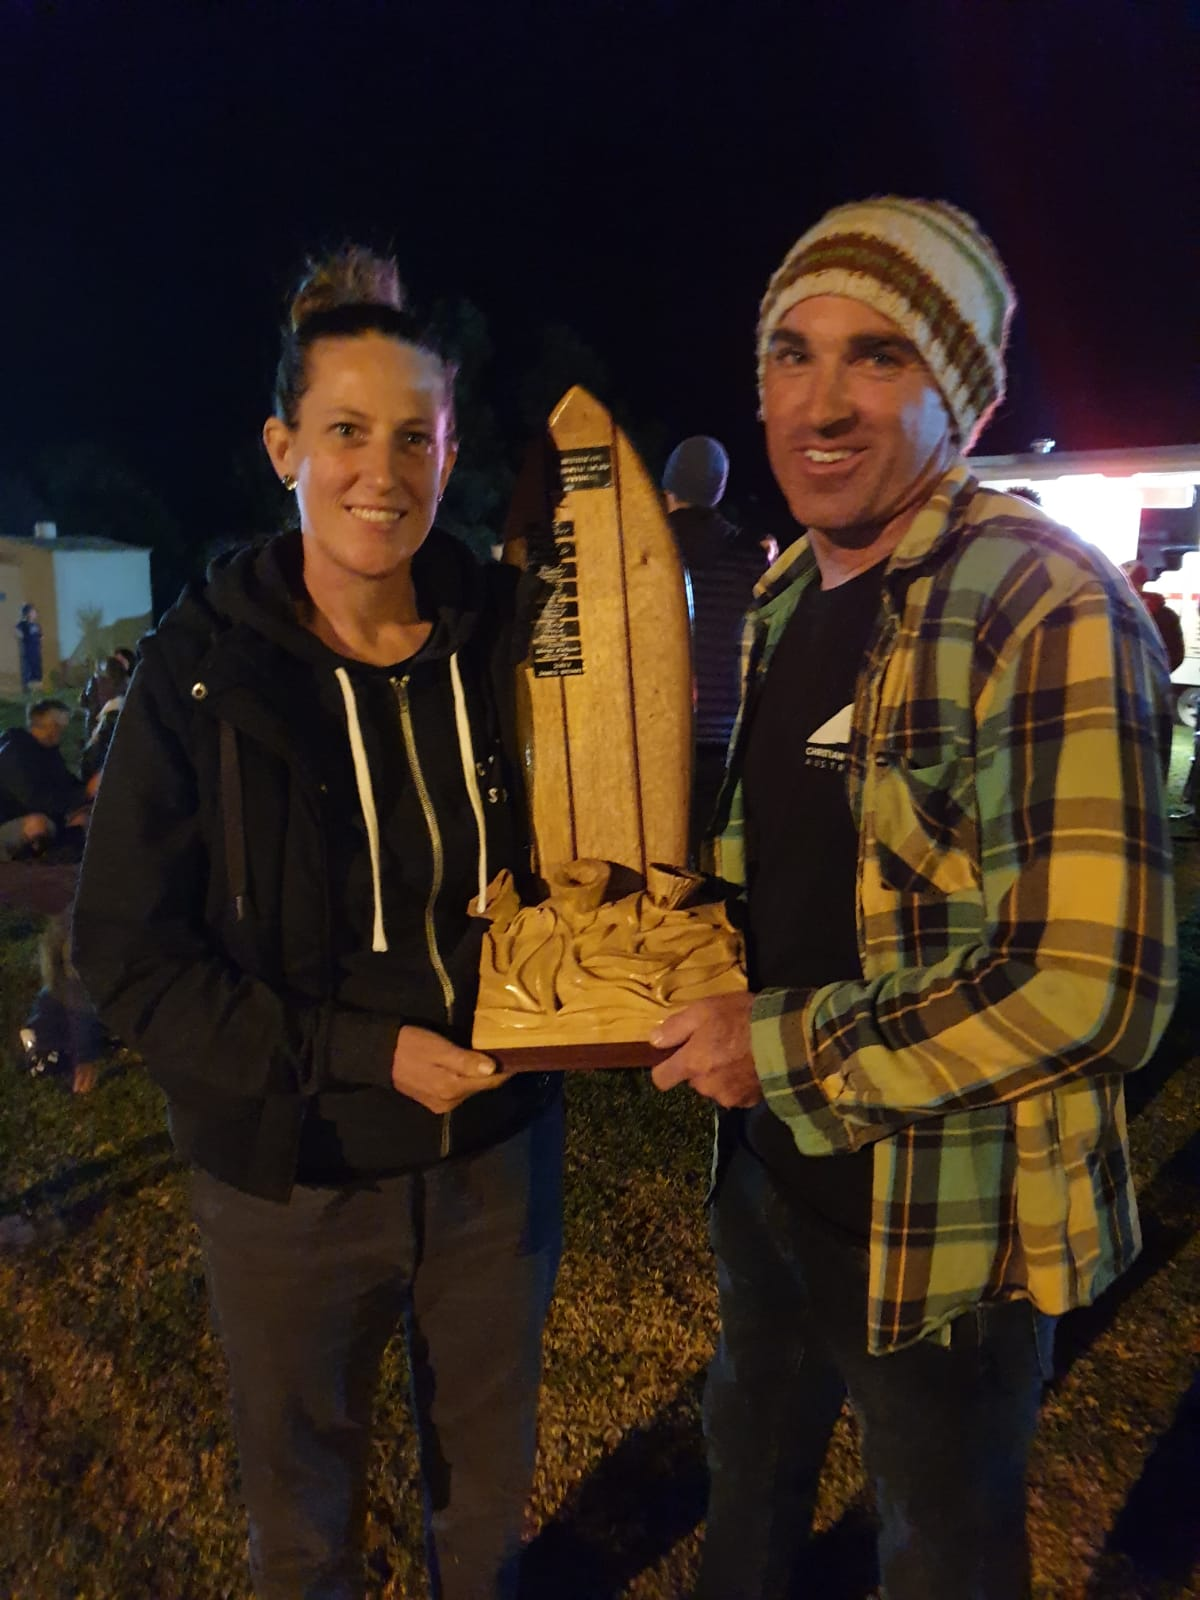 We had the honour of winning the Surfing SA Christine Cox Memorial Award for 2018. This award for the contribution for the work we have done for Surfing SA and the surfing community